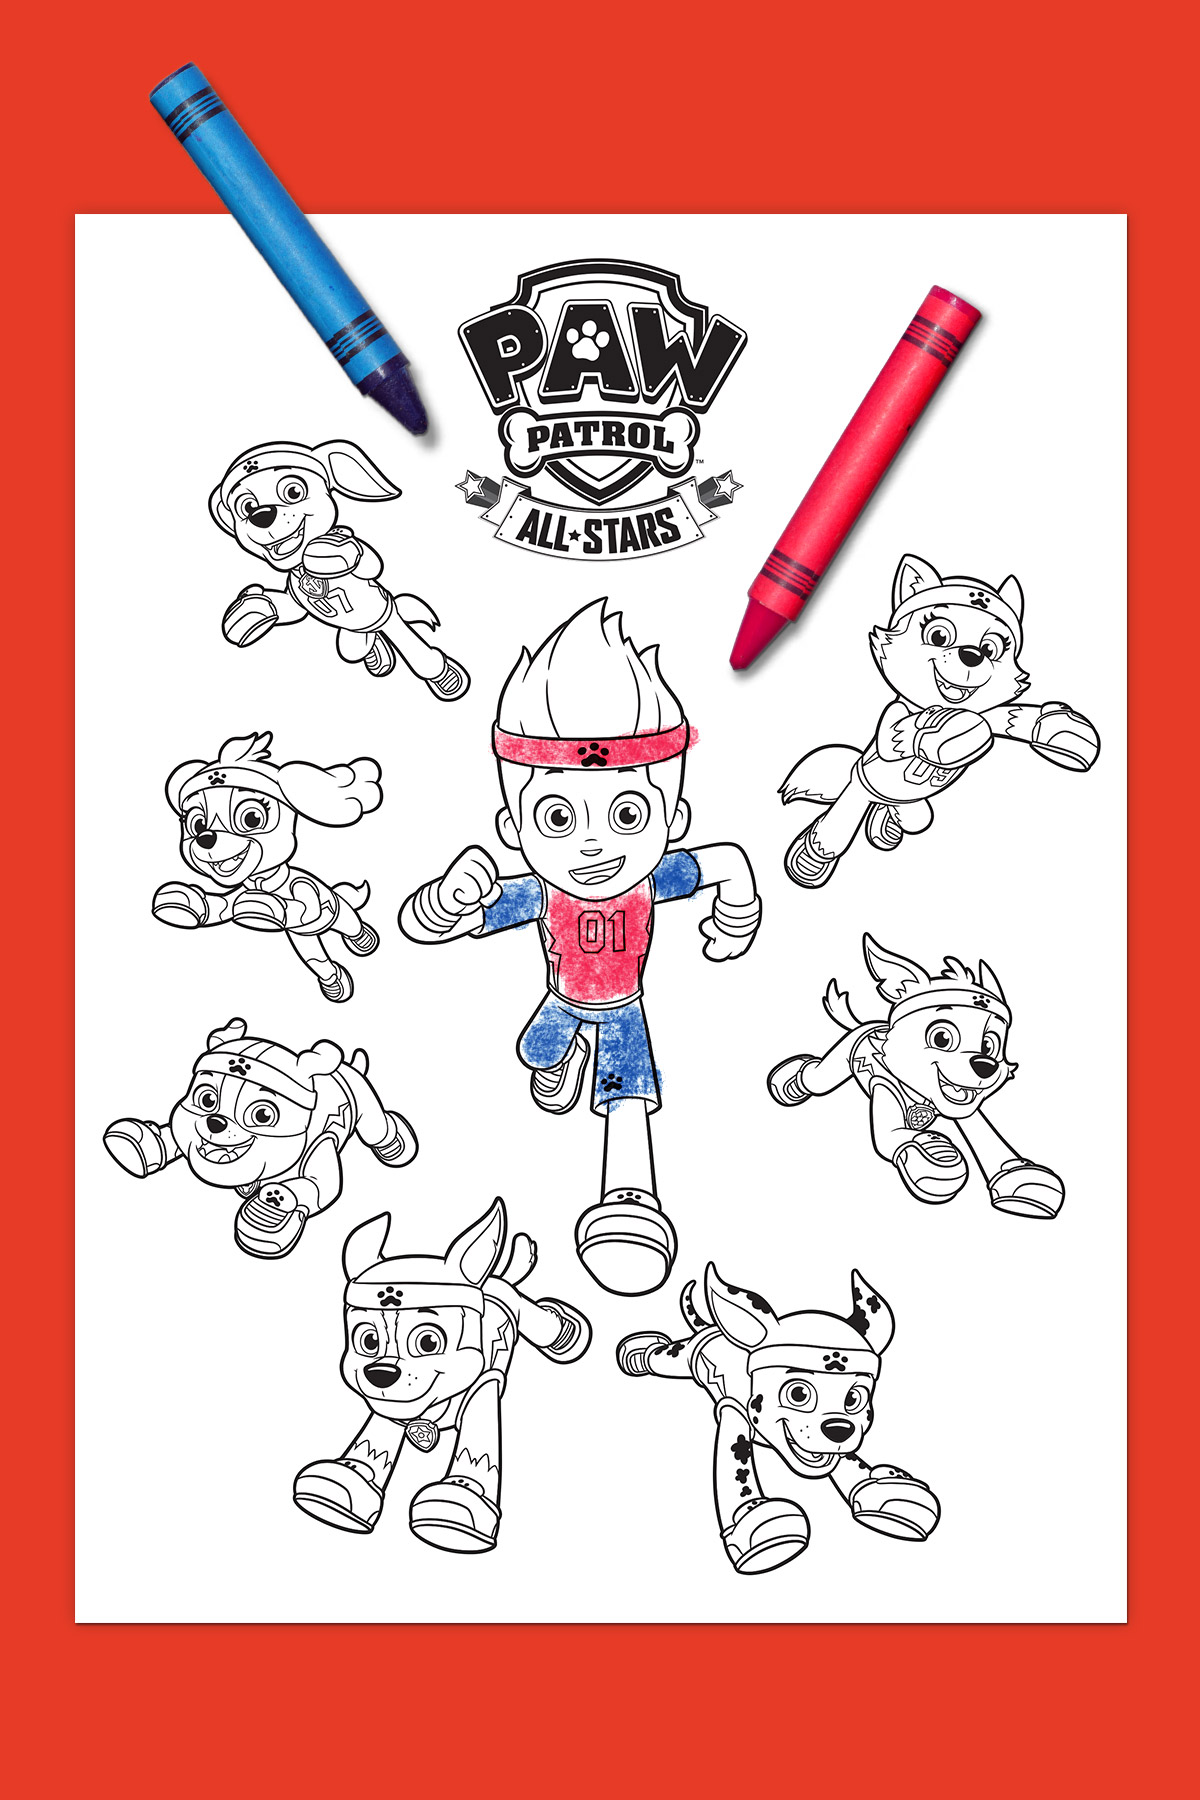 PAW Patrol All-Stars Coloring Page